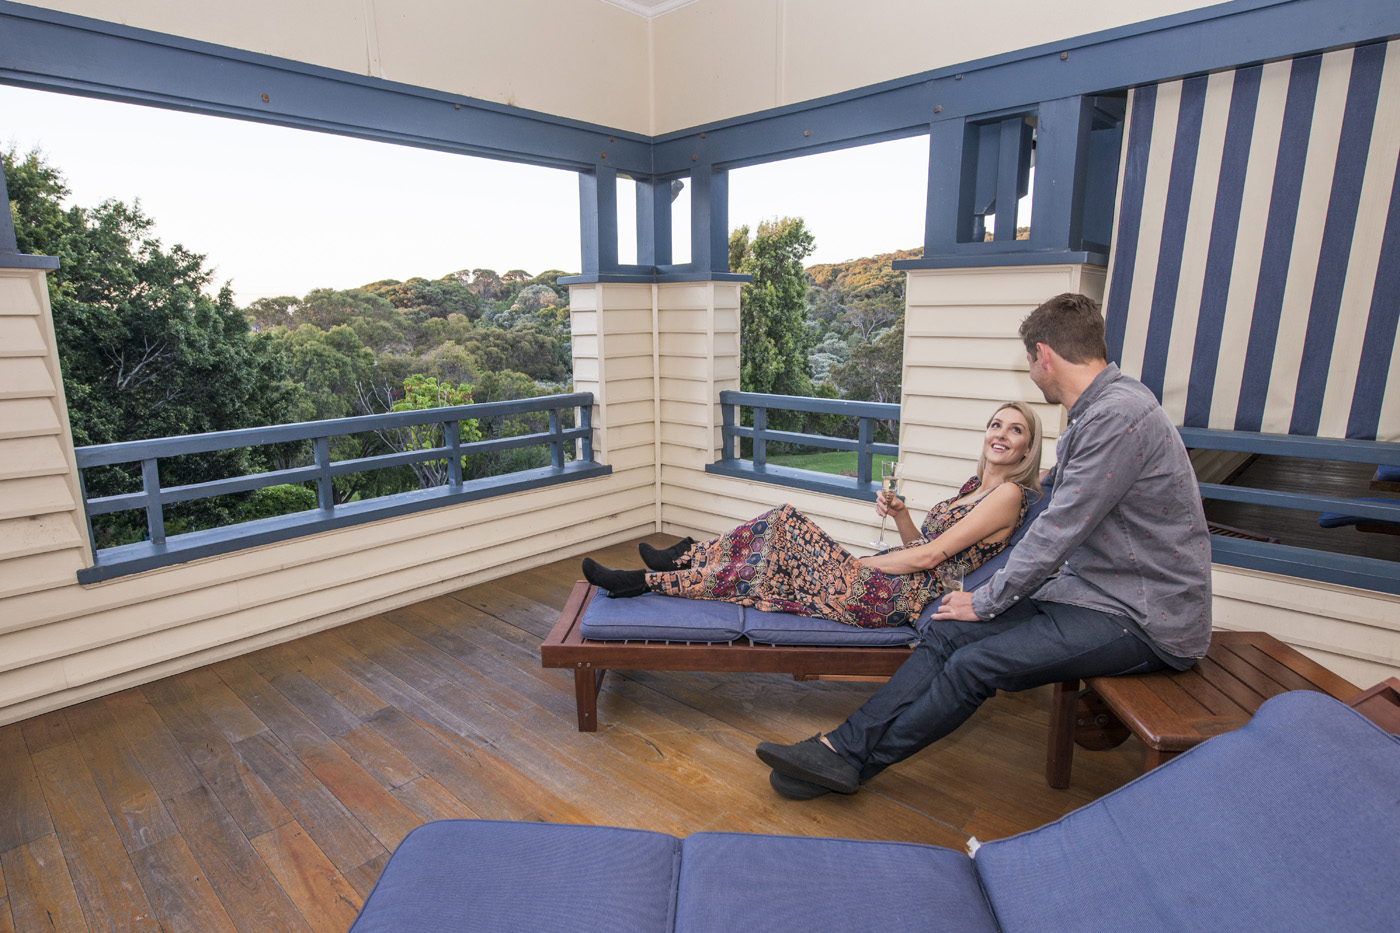 accommodation caves house hotel yallingup. Black Bedroom Furniture Sets. Home Design Ideas